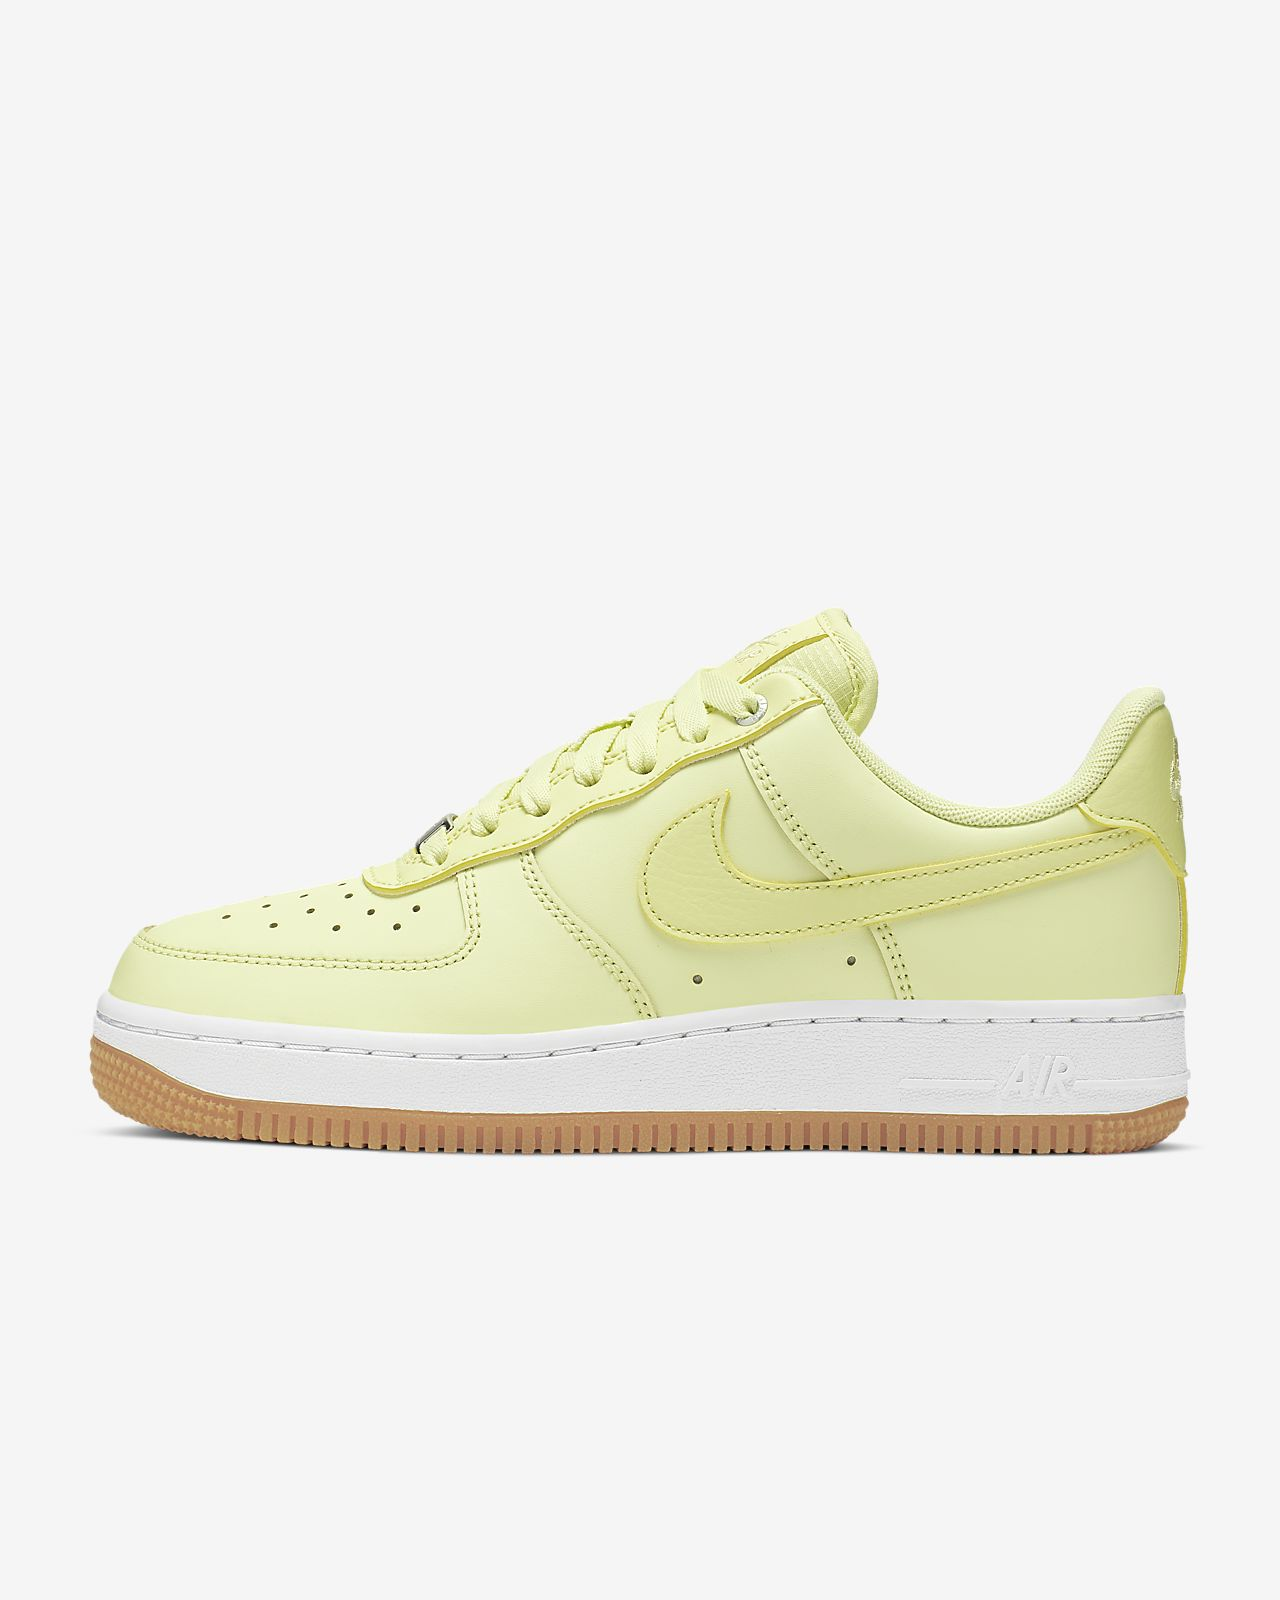 promo codes order online genuine shoes Chaussure Nike Air Force 1 '07 Low Premium pour Femme